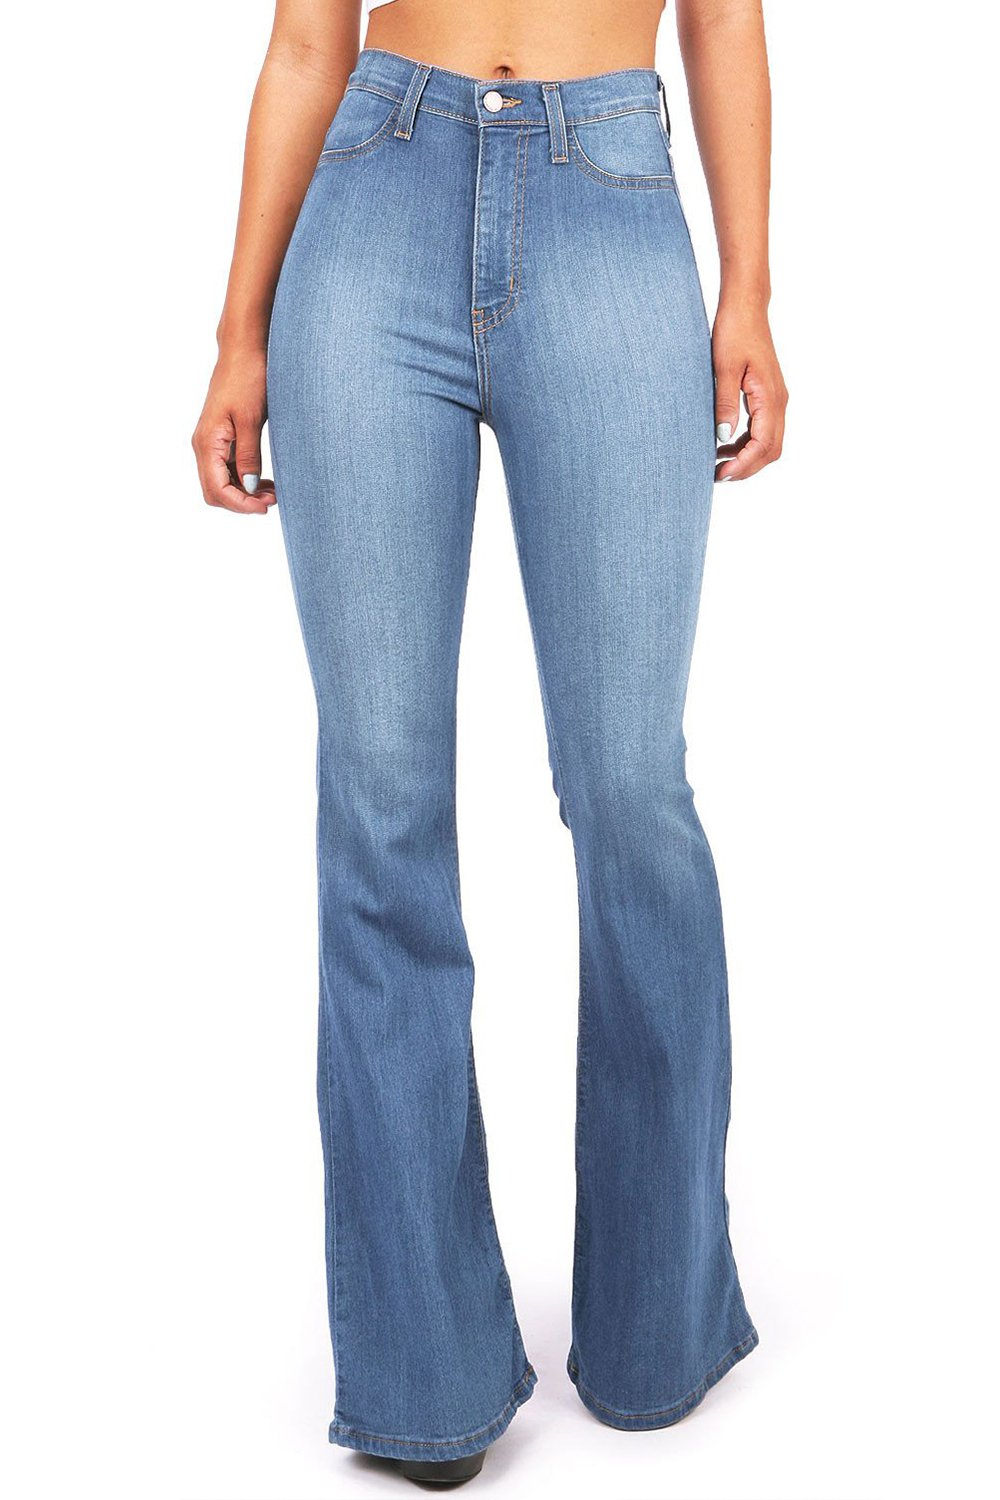 chimikeey Womens Juniors Flared High Waisted Bell Bottom Fitted Denim Jeans Jeggings